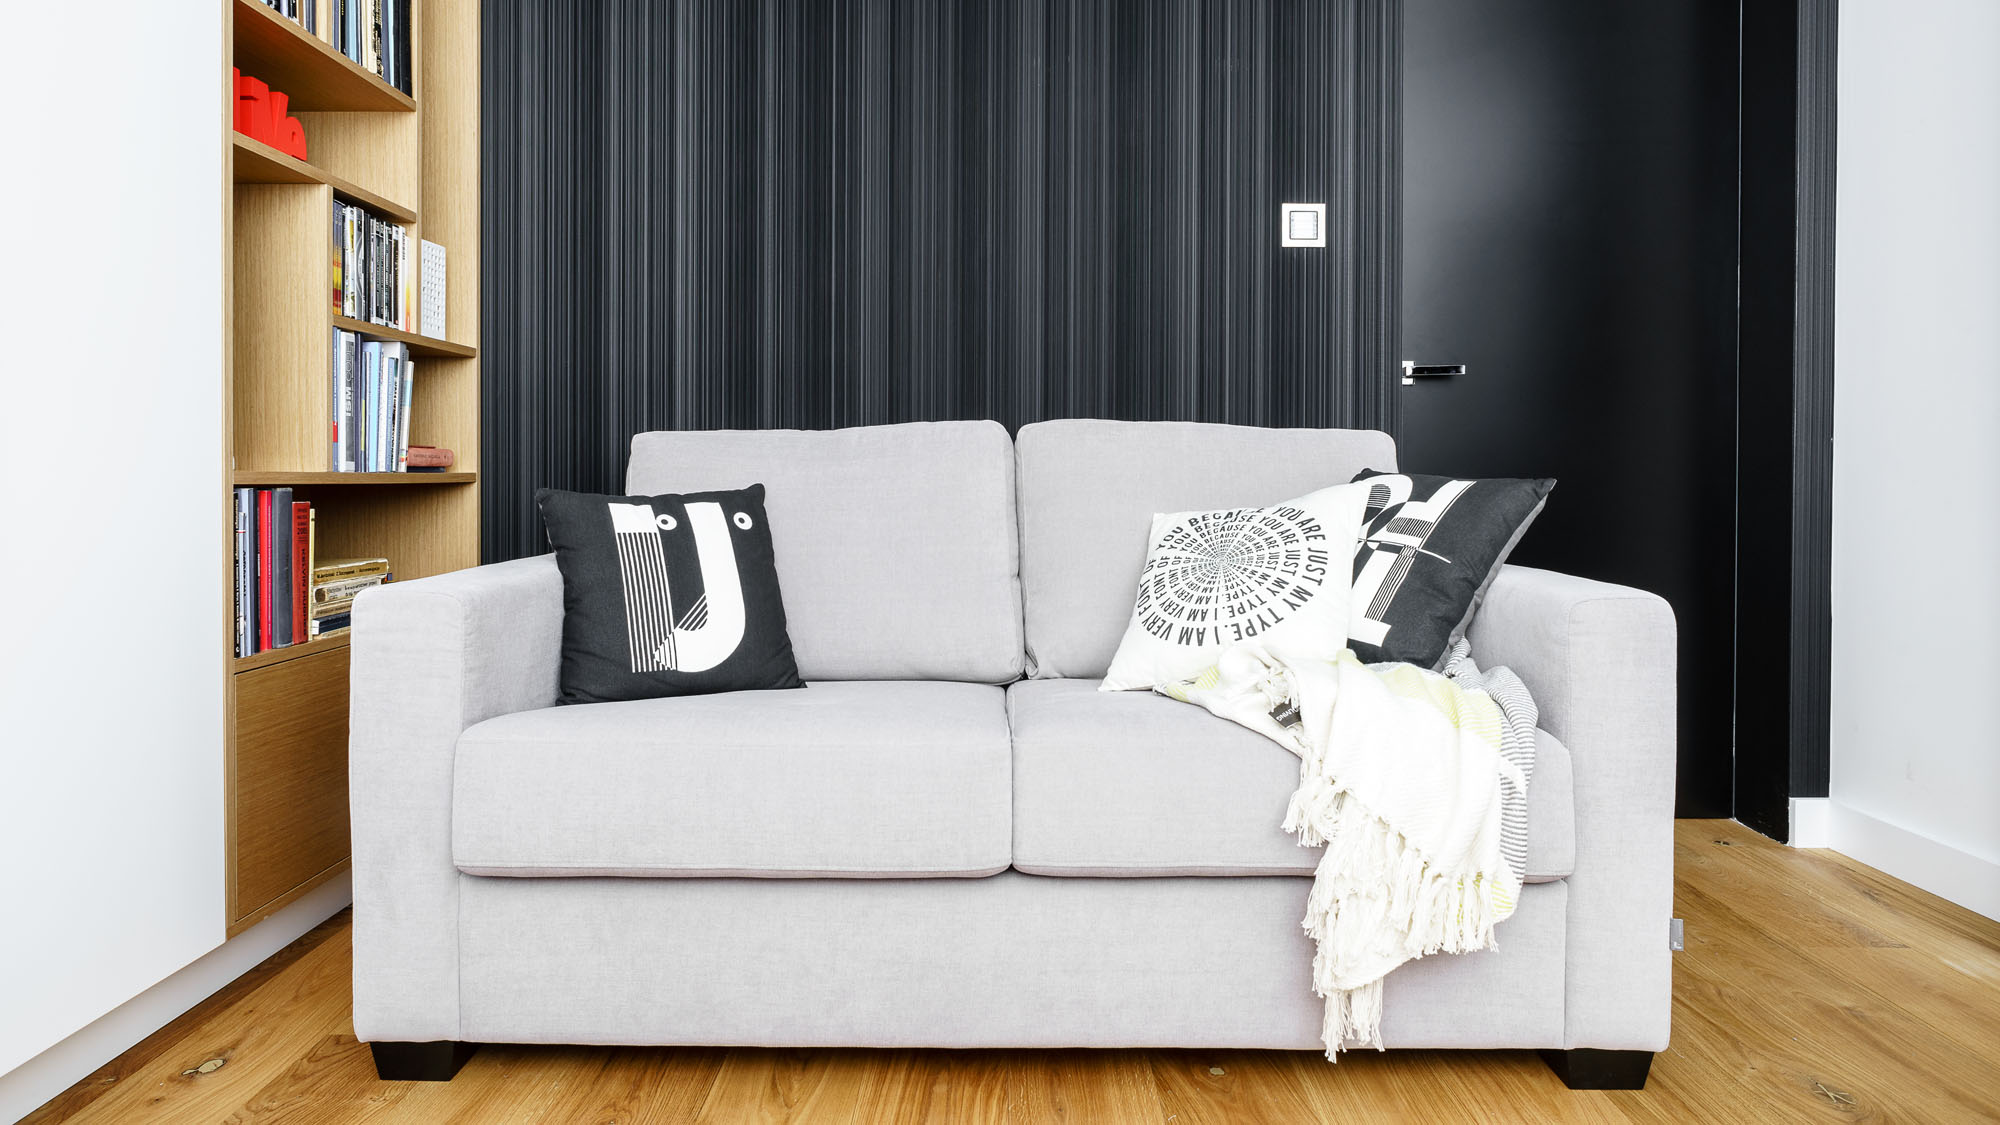 Modern Metallic, Wooden, White Theme Three Bedroom Apartment in Gdynia by Dragon Art-44